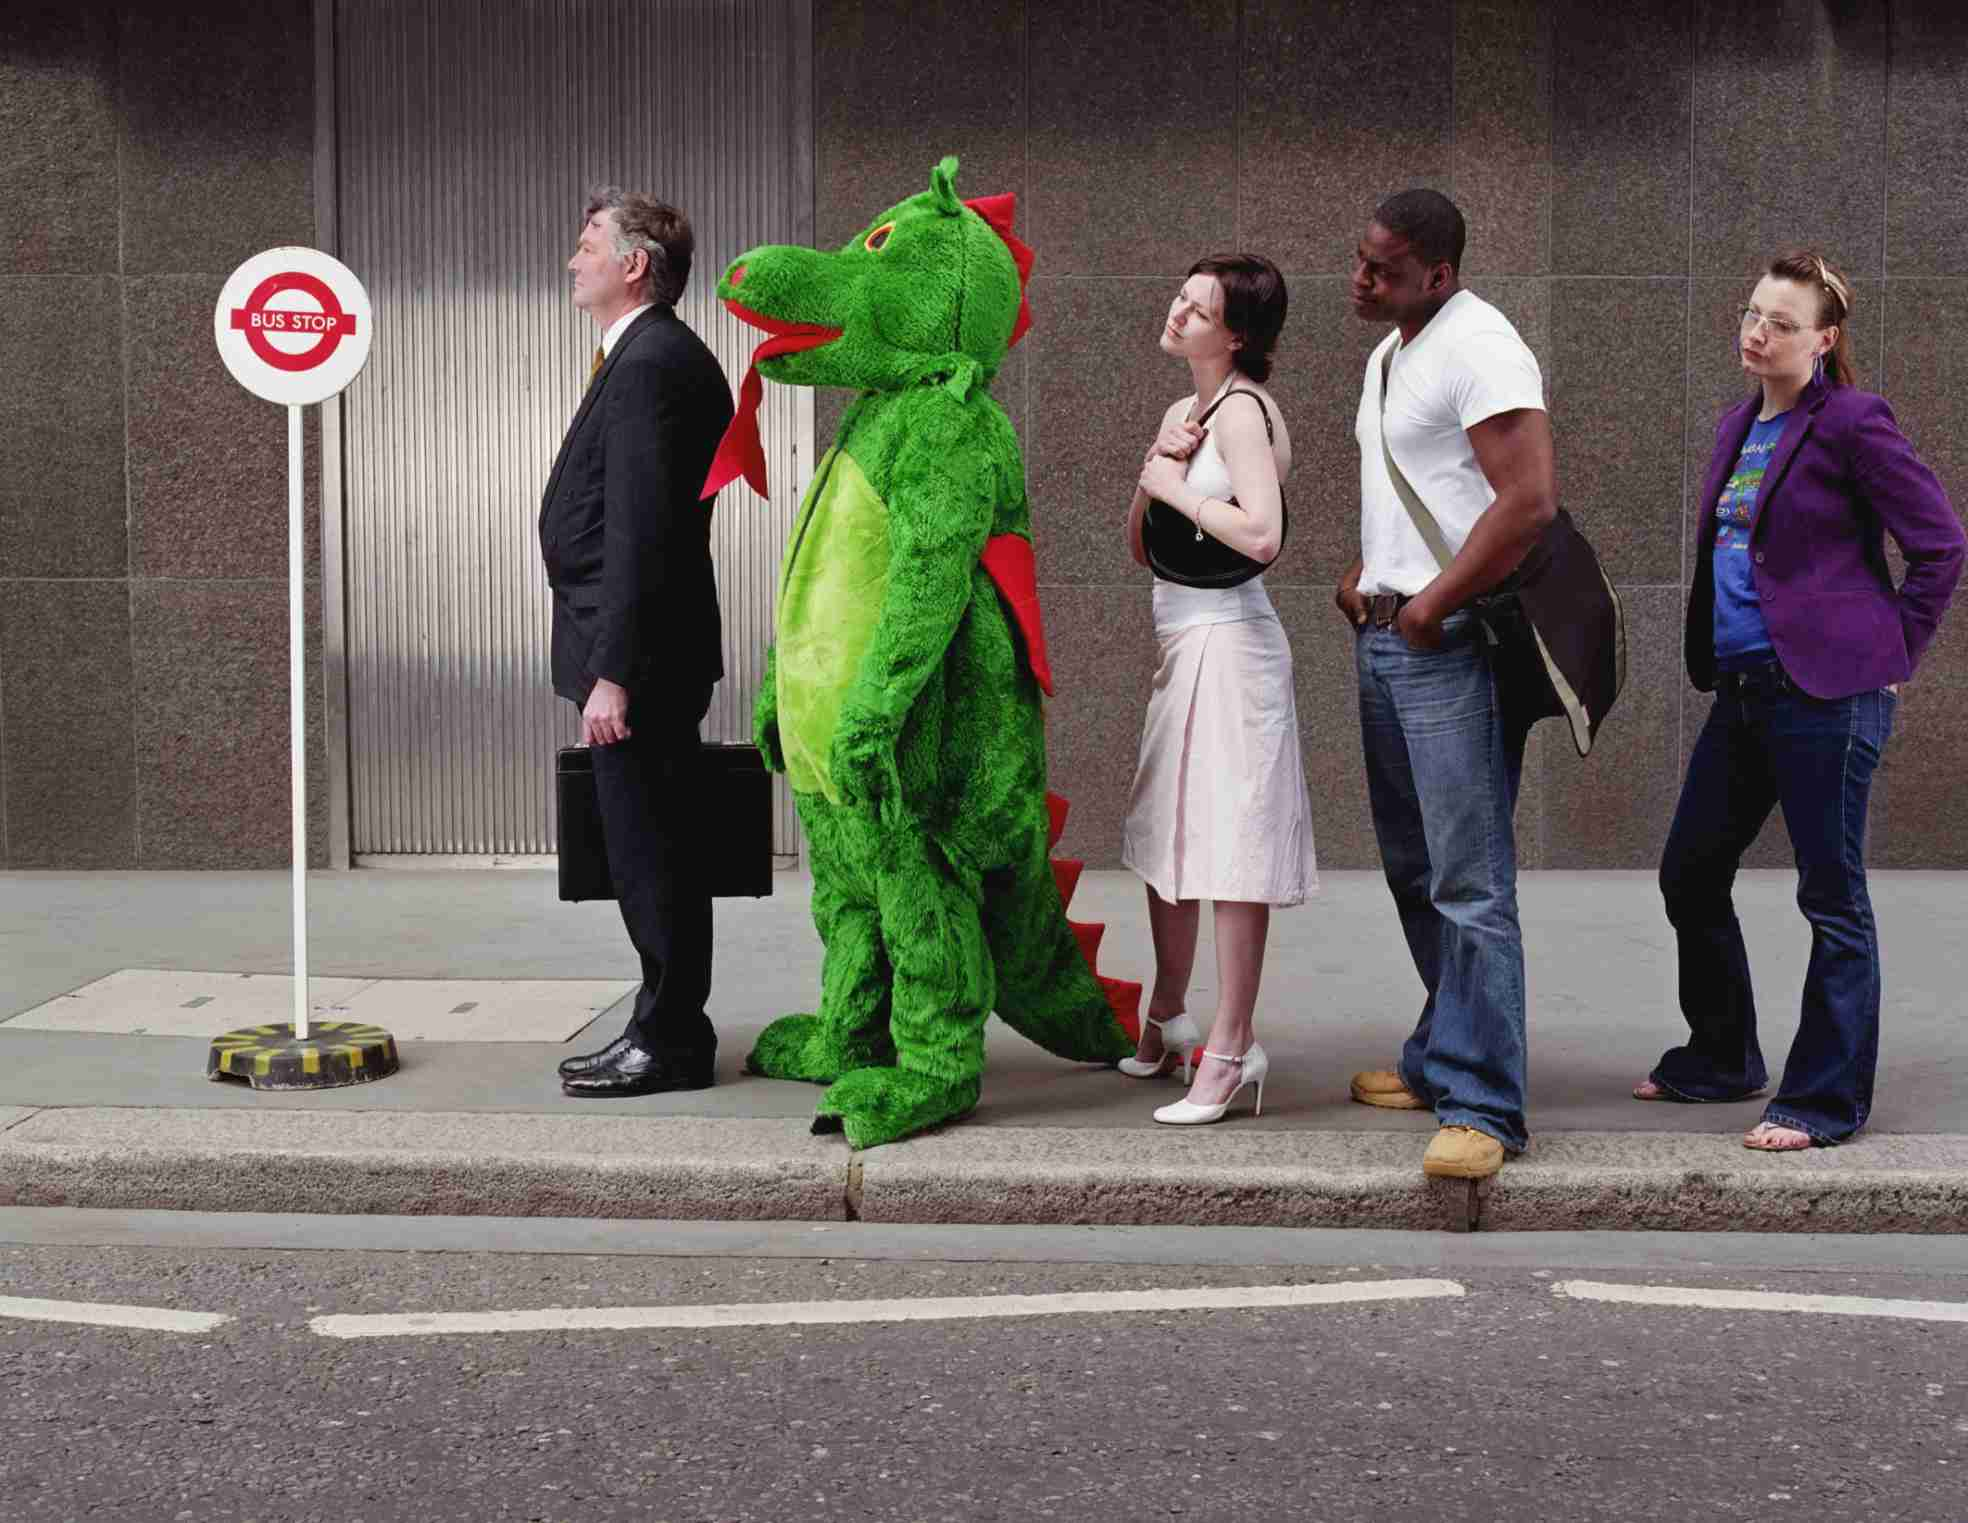 A person dressed in a dragon costume demonstrates non-conformity to social norms and pressures.